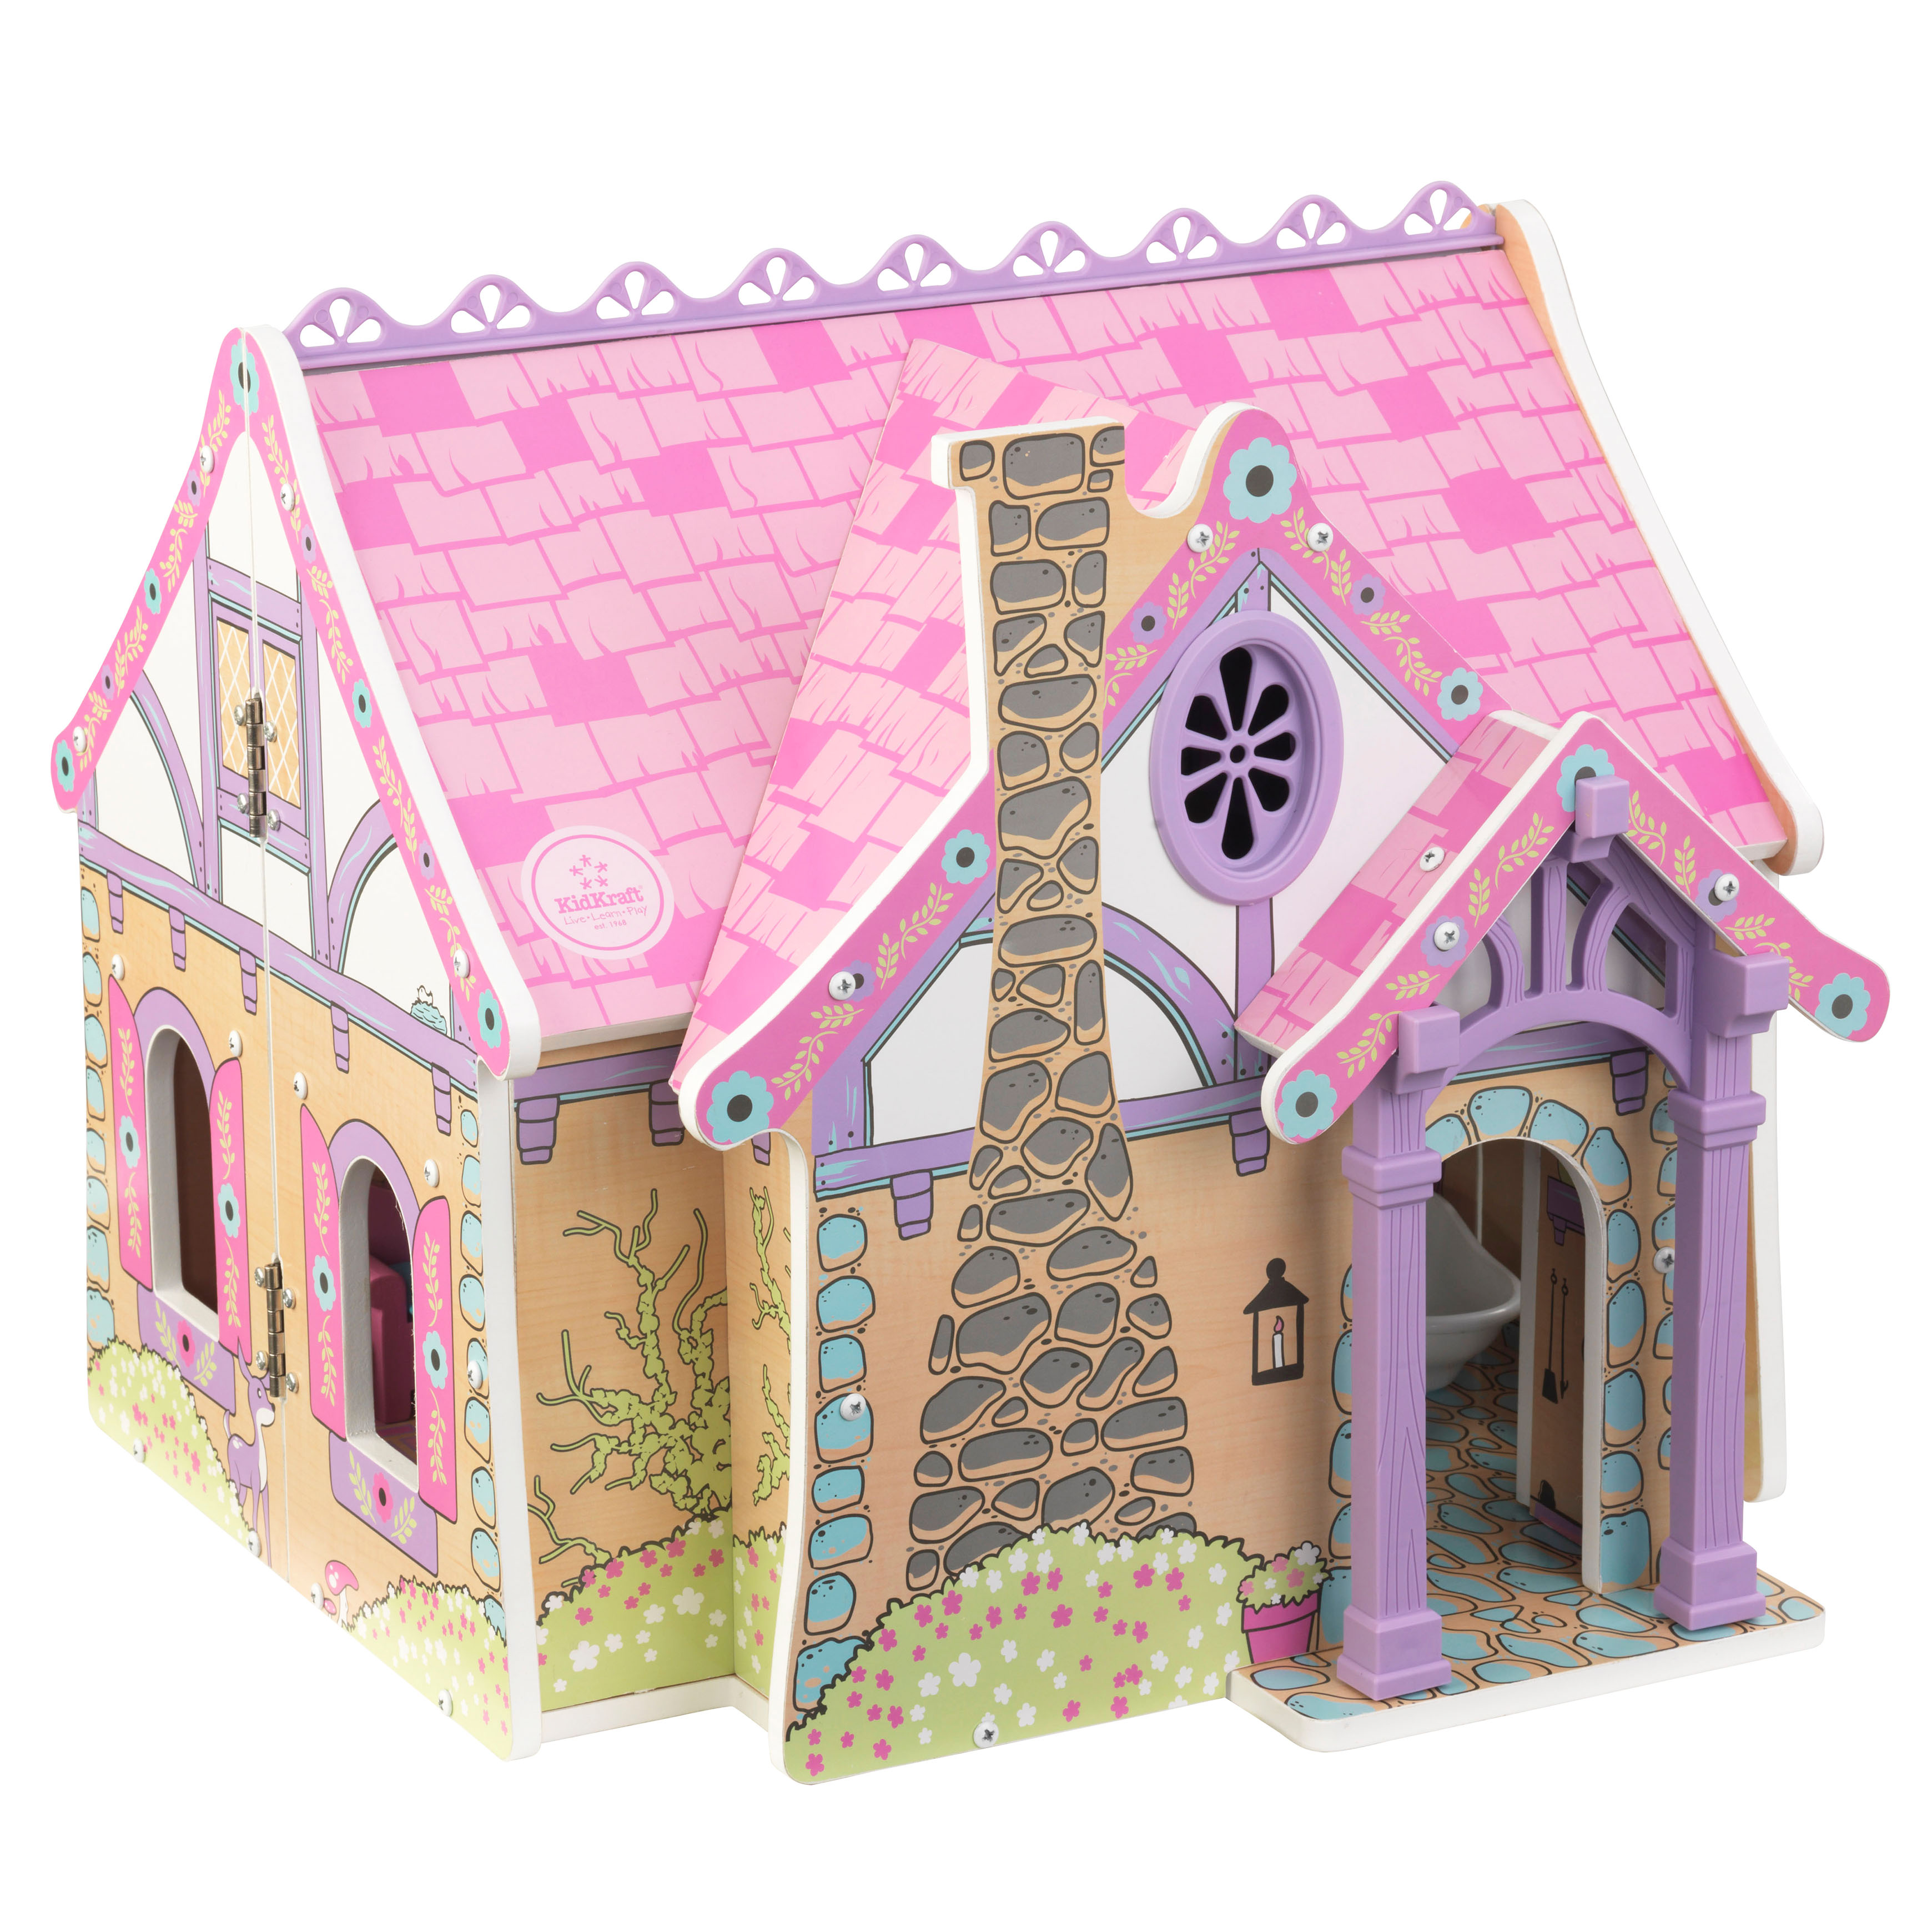 KidKraft Enchanted Forest Dollhouse by KidKraft